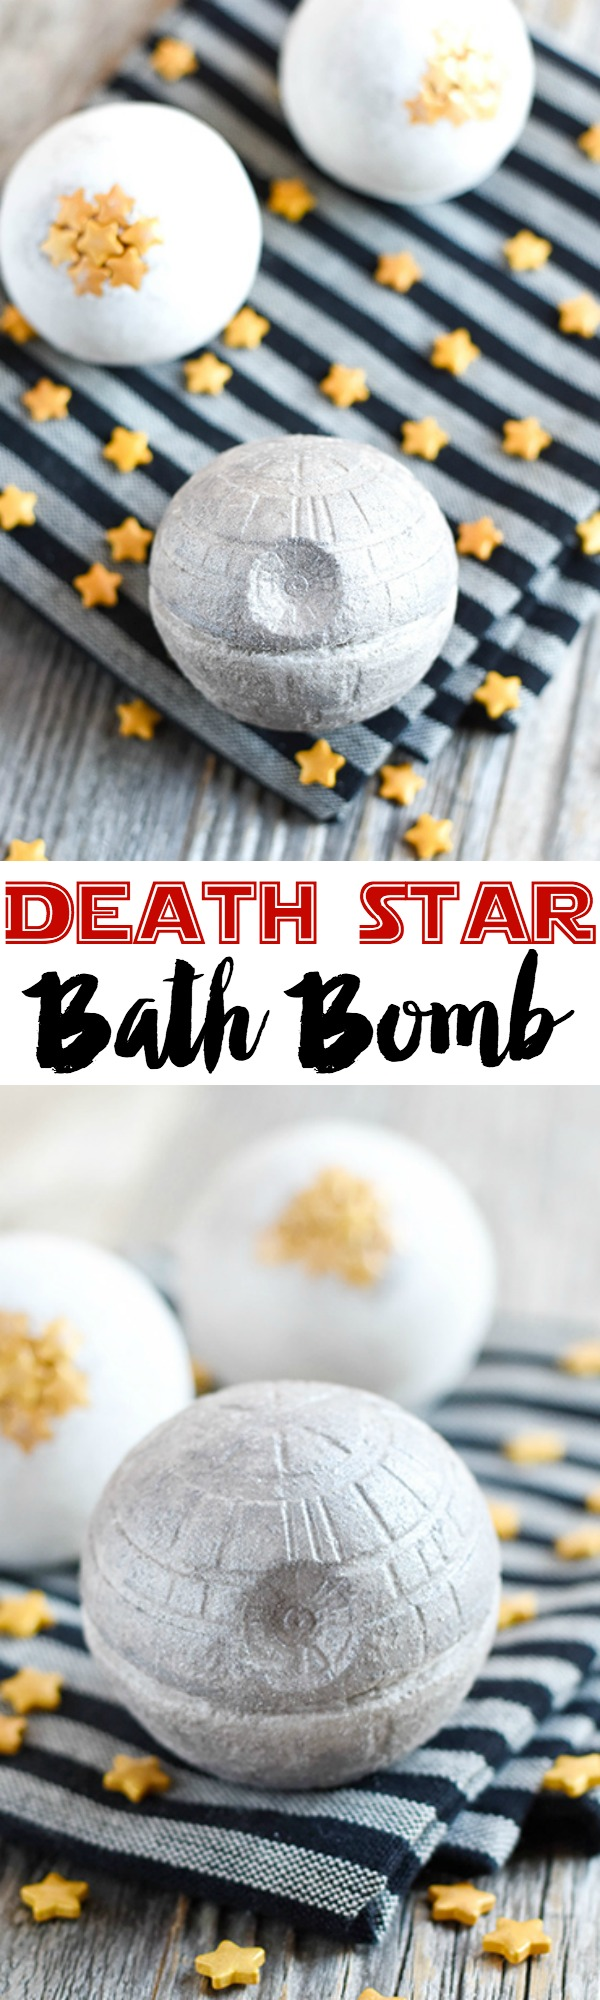 DIY-Death-Star-Bath-Bomb